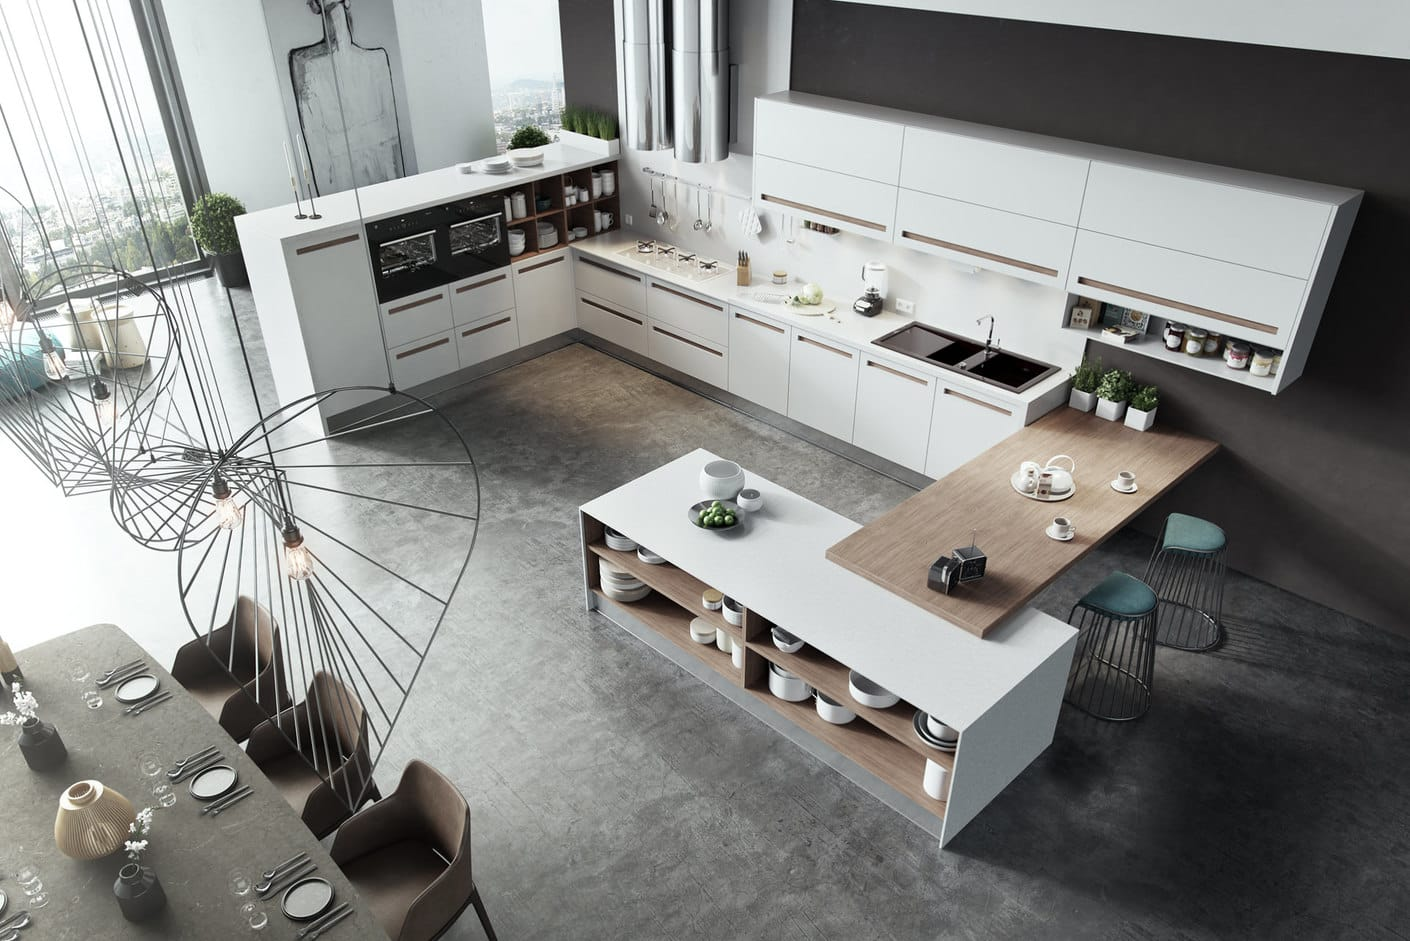 Gallery – Rendered with V-Ray | Chaos Group